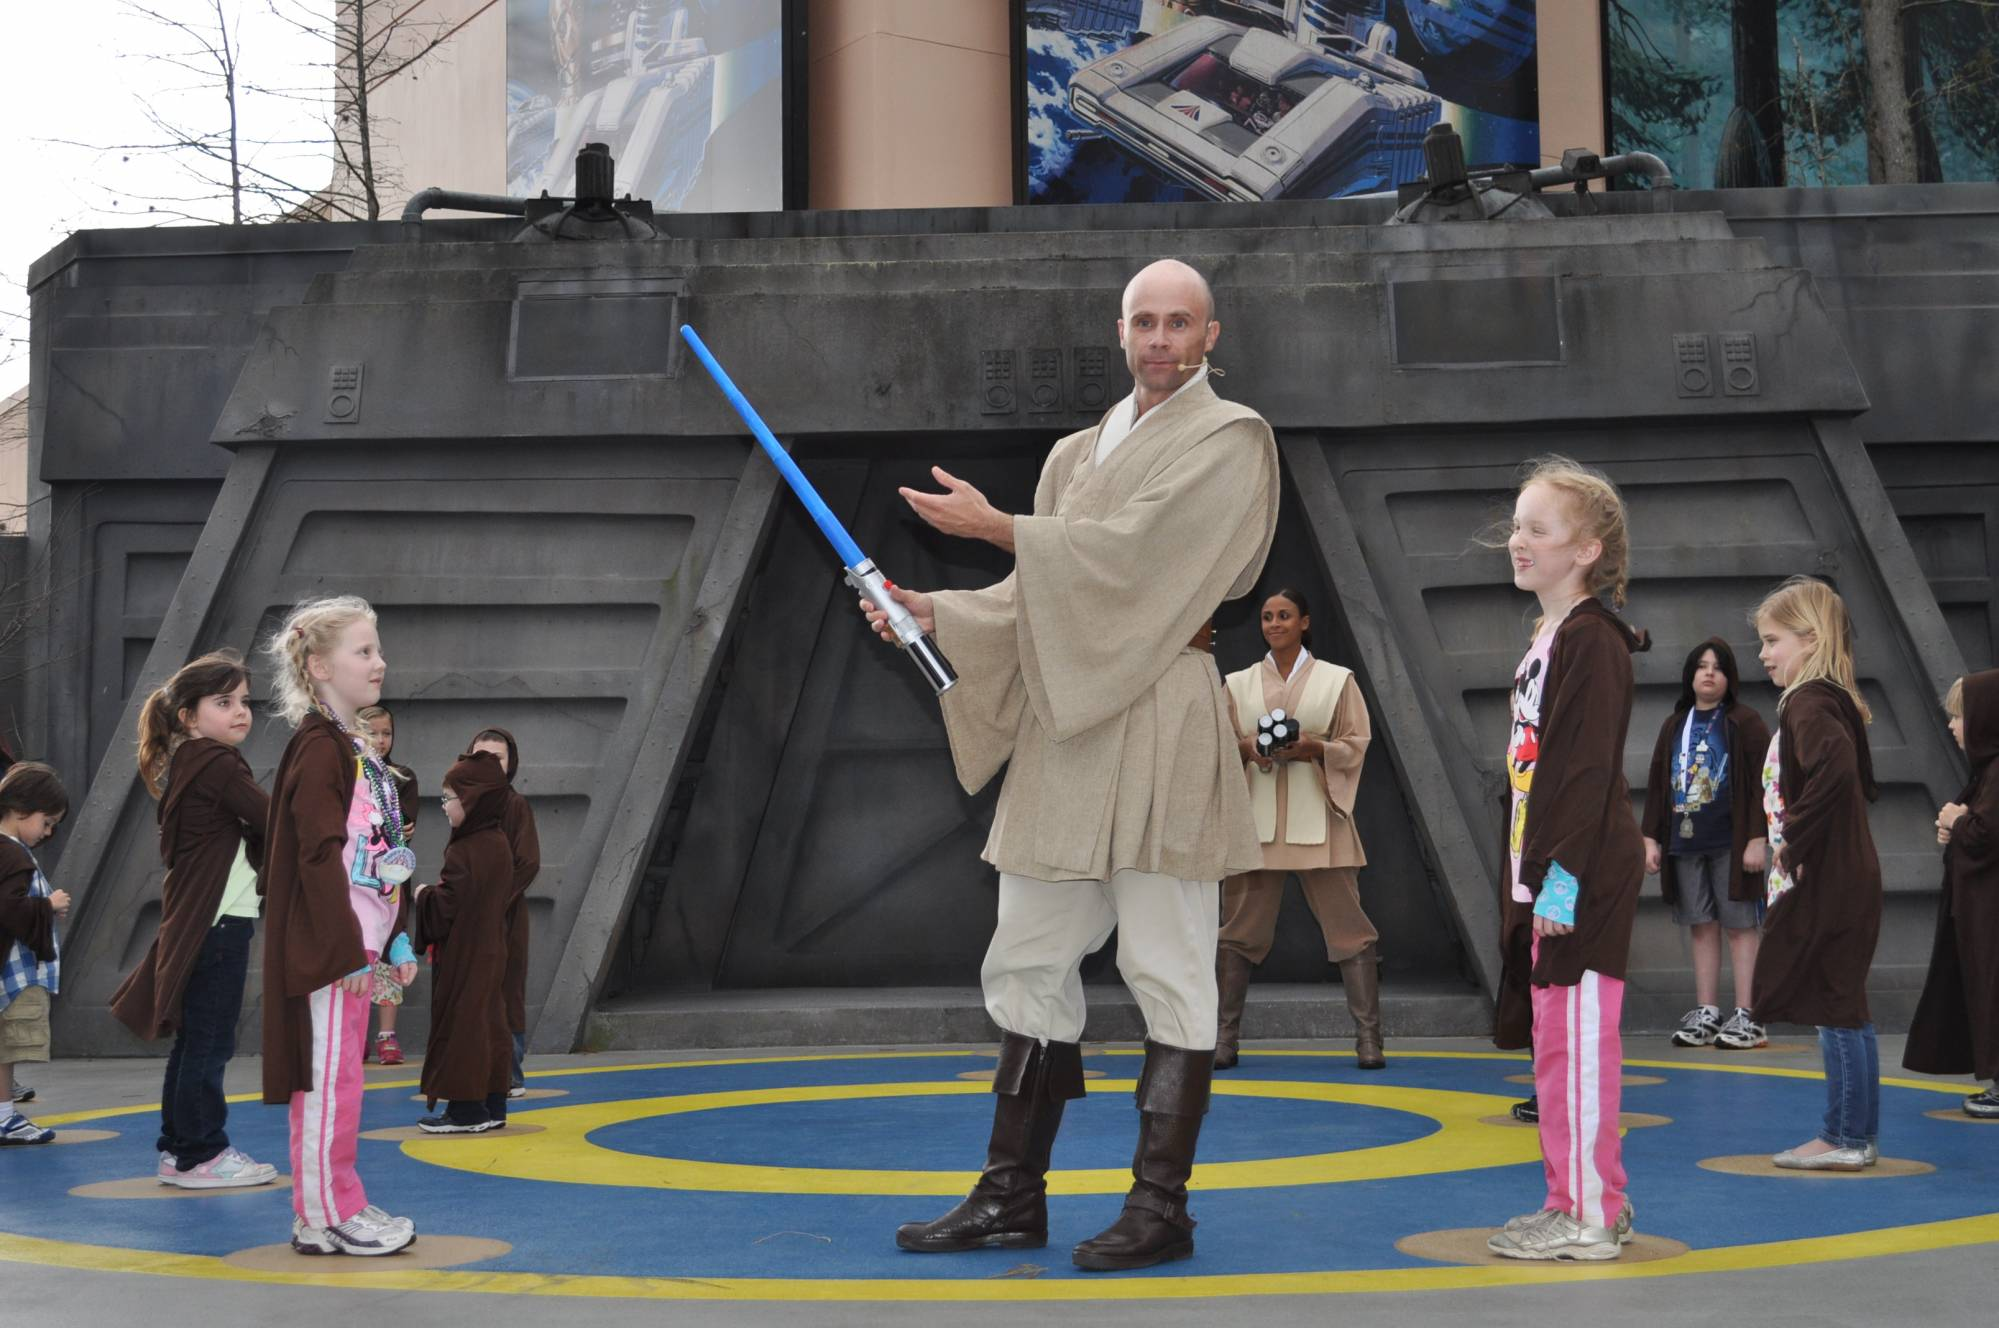 Children learn the way of the Jedi at Disney Hollywood Studios |PassPorter.com